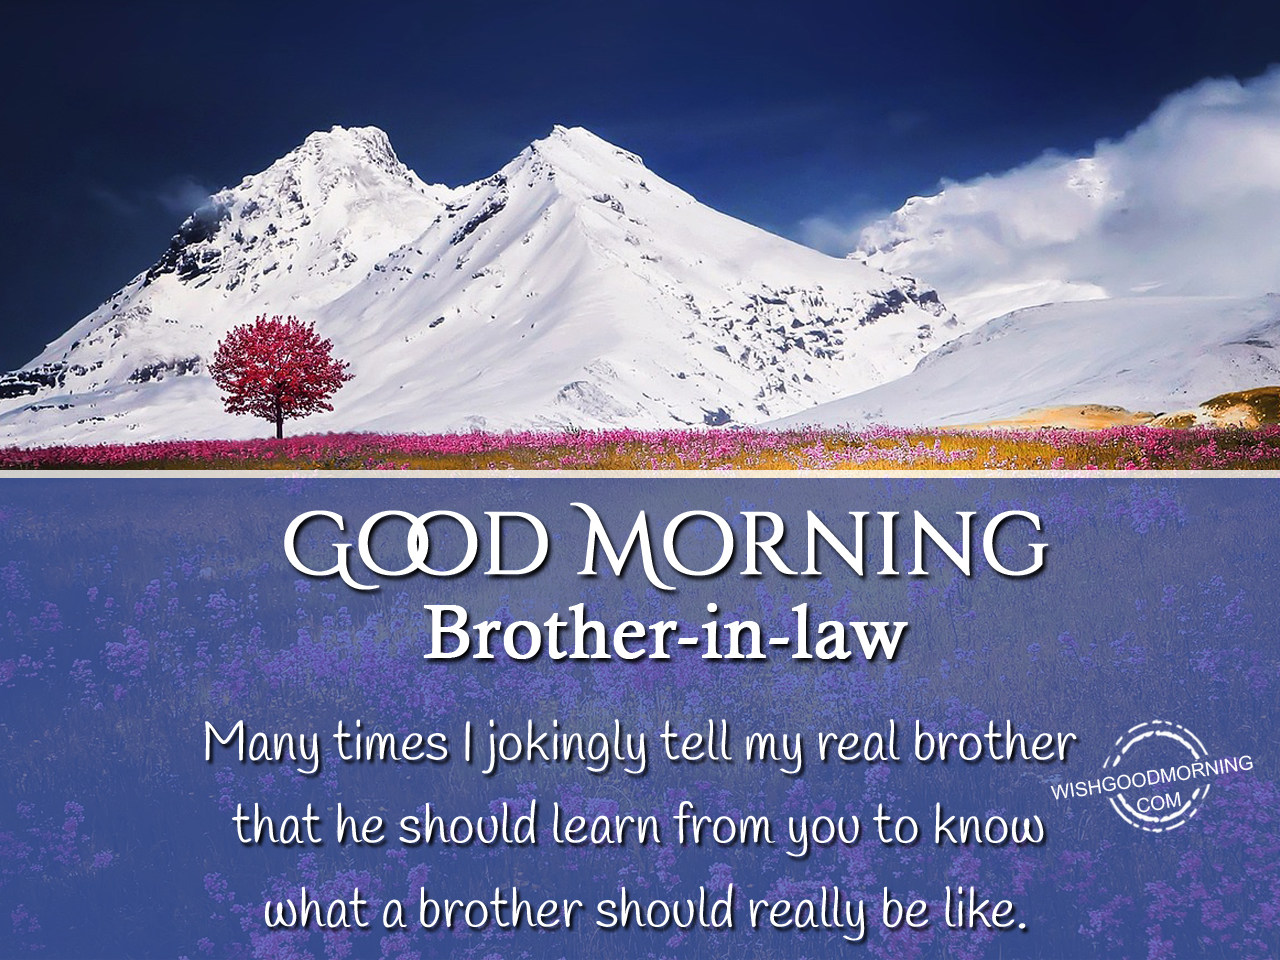 Good Morning Wishes For Brother-in-law - Good Morning